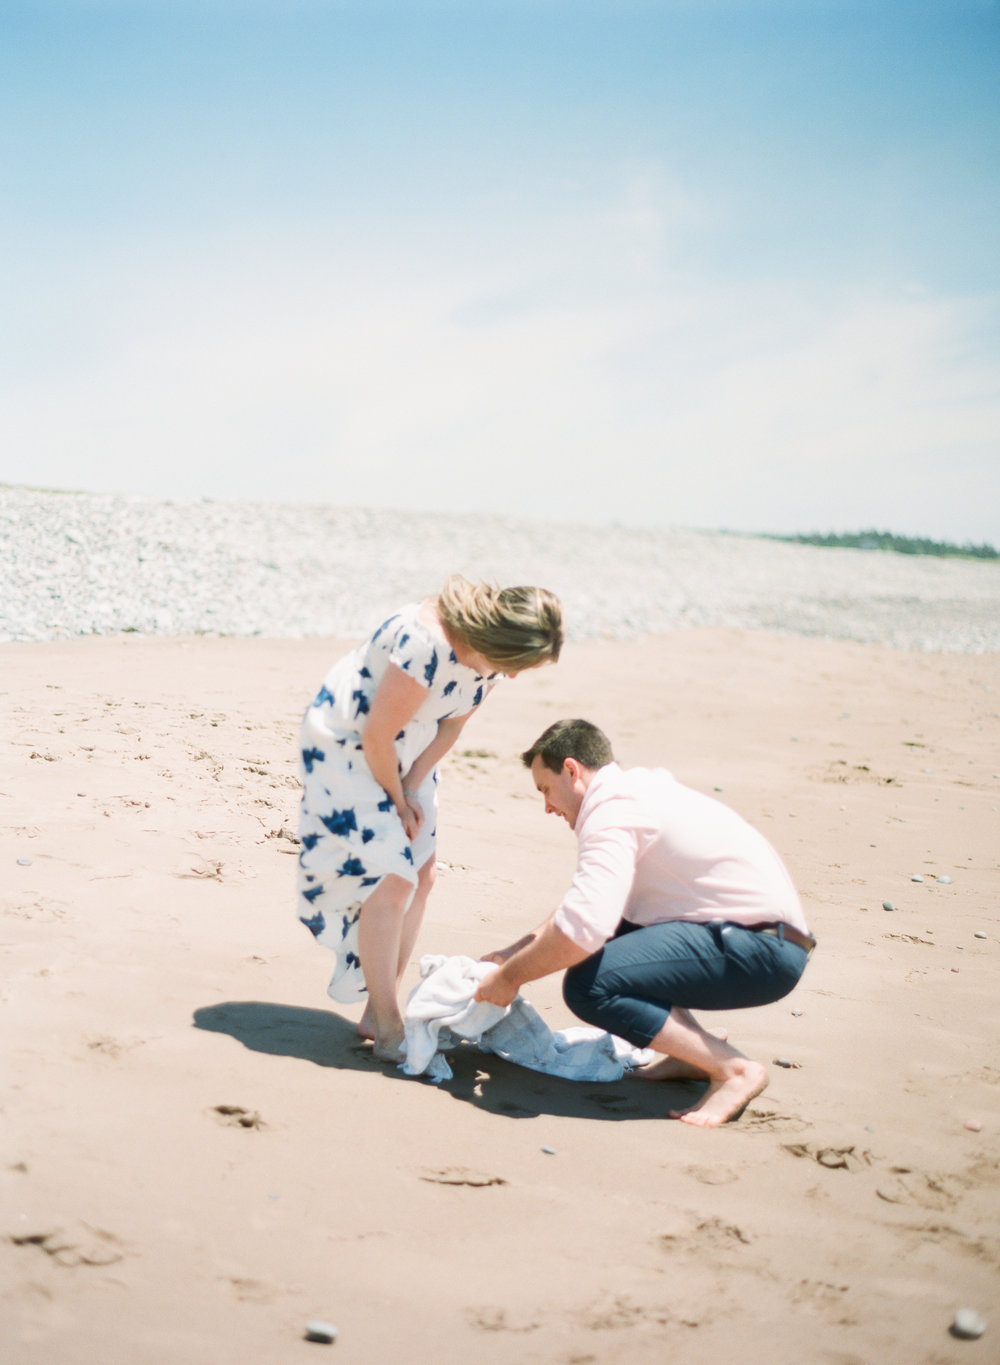 Jacqueline Anne Photography-Melissa and Daniel - Contax 645 - Beach Full Sun-9.jpg